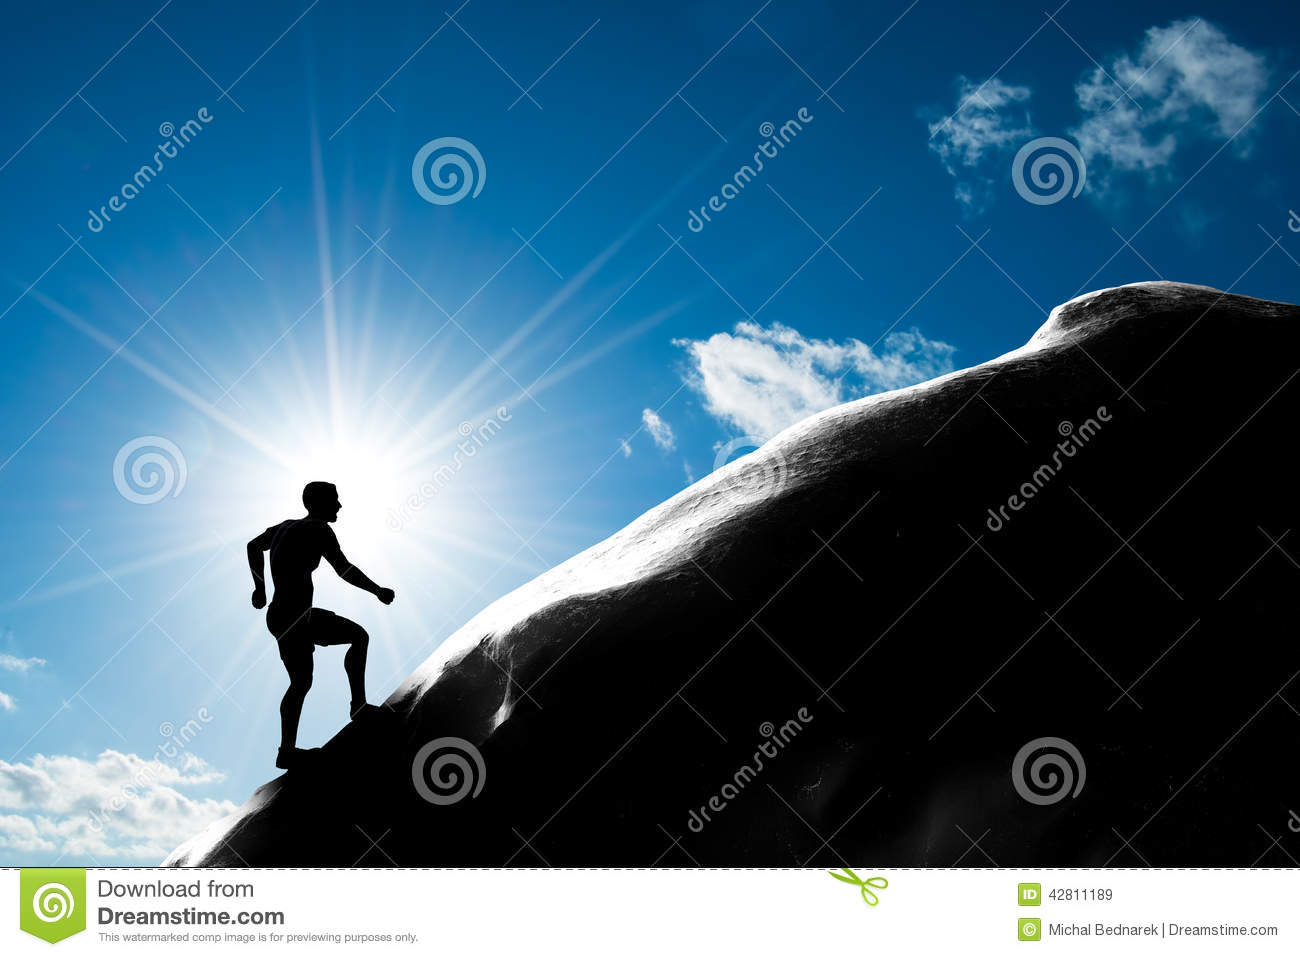 Silhouette of a man running up hill to the peak of the mountain